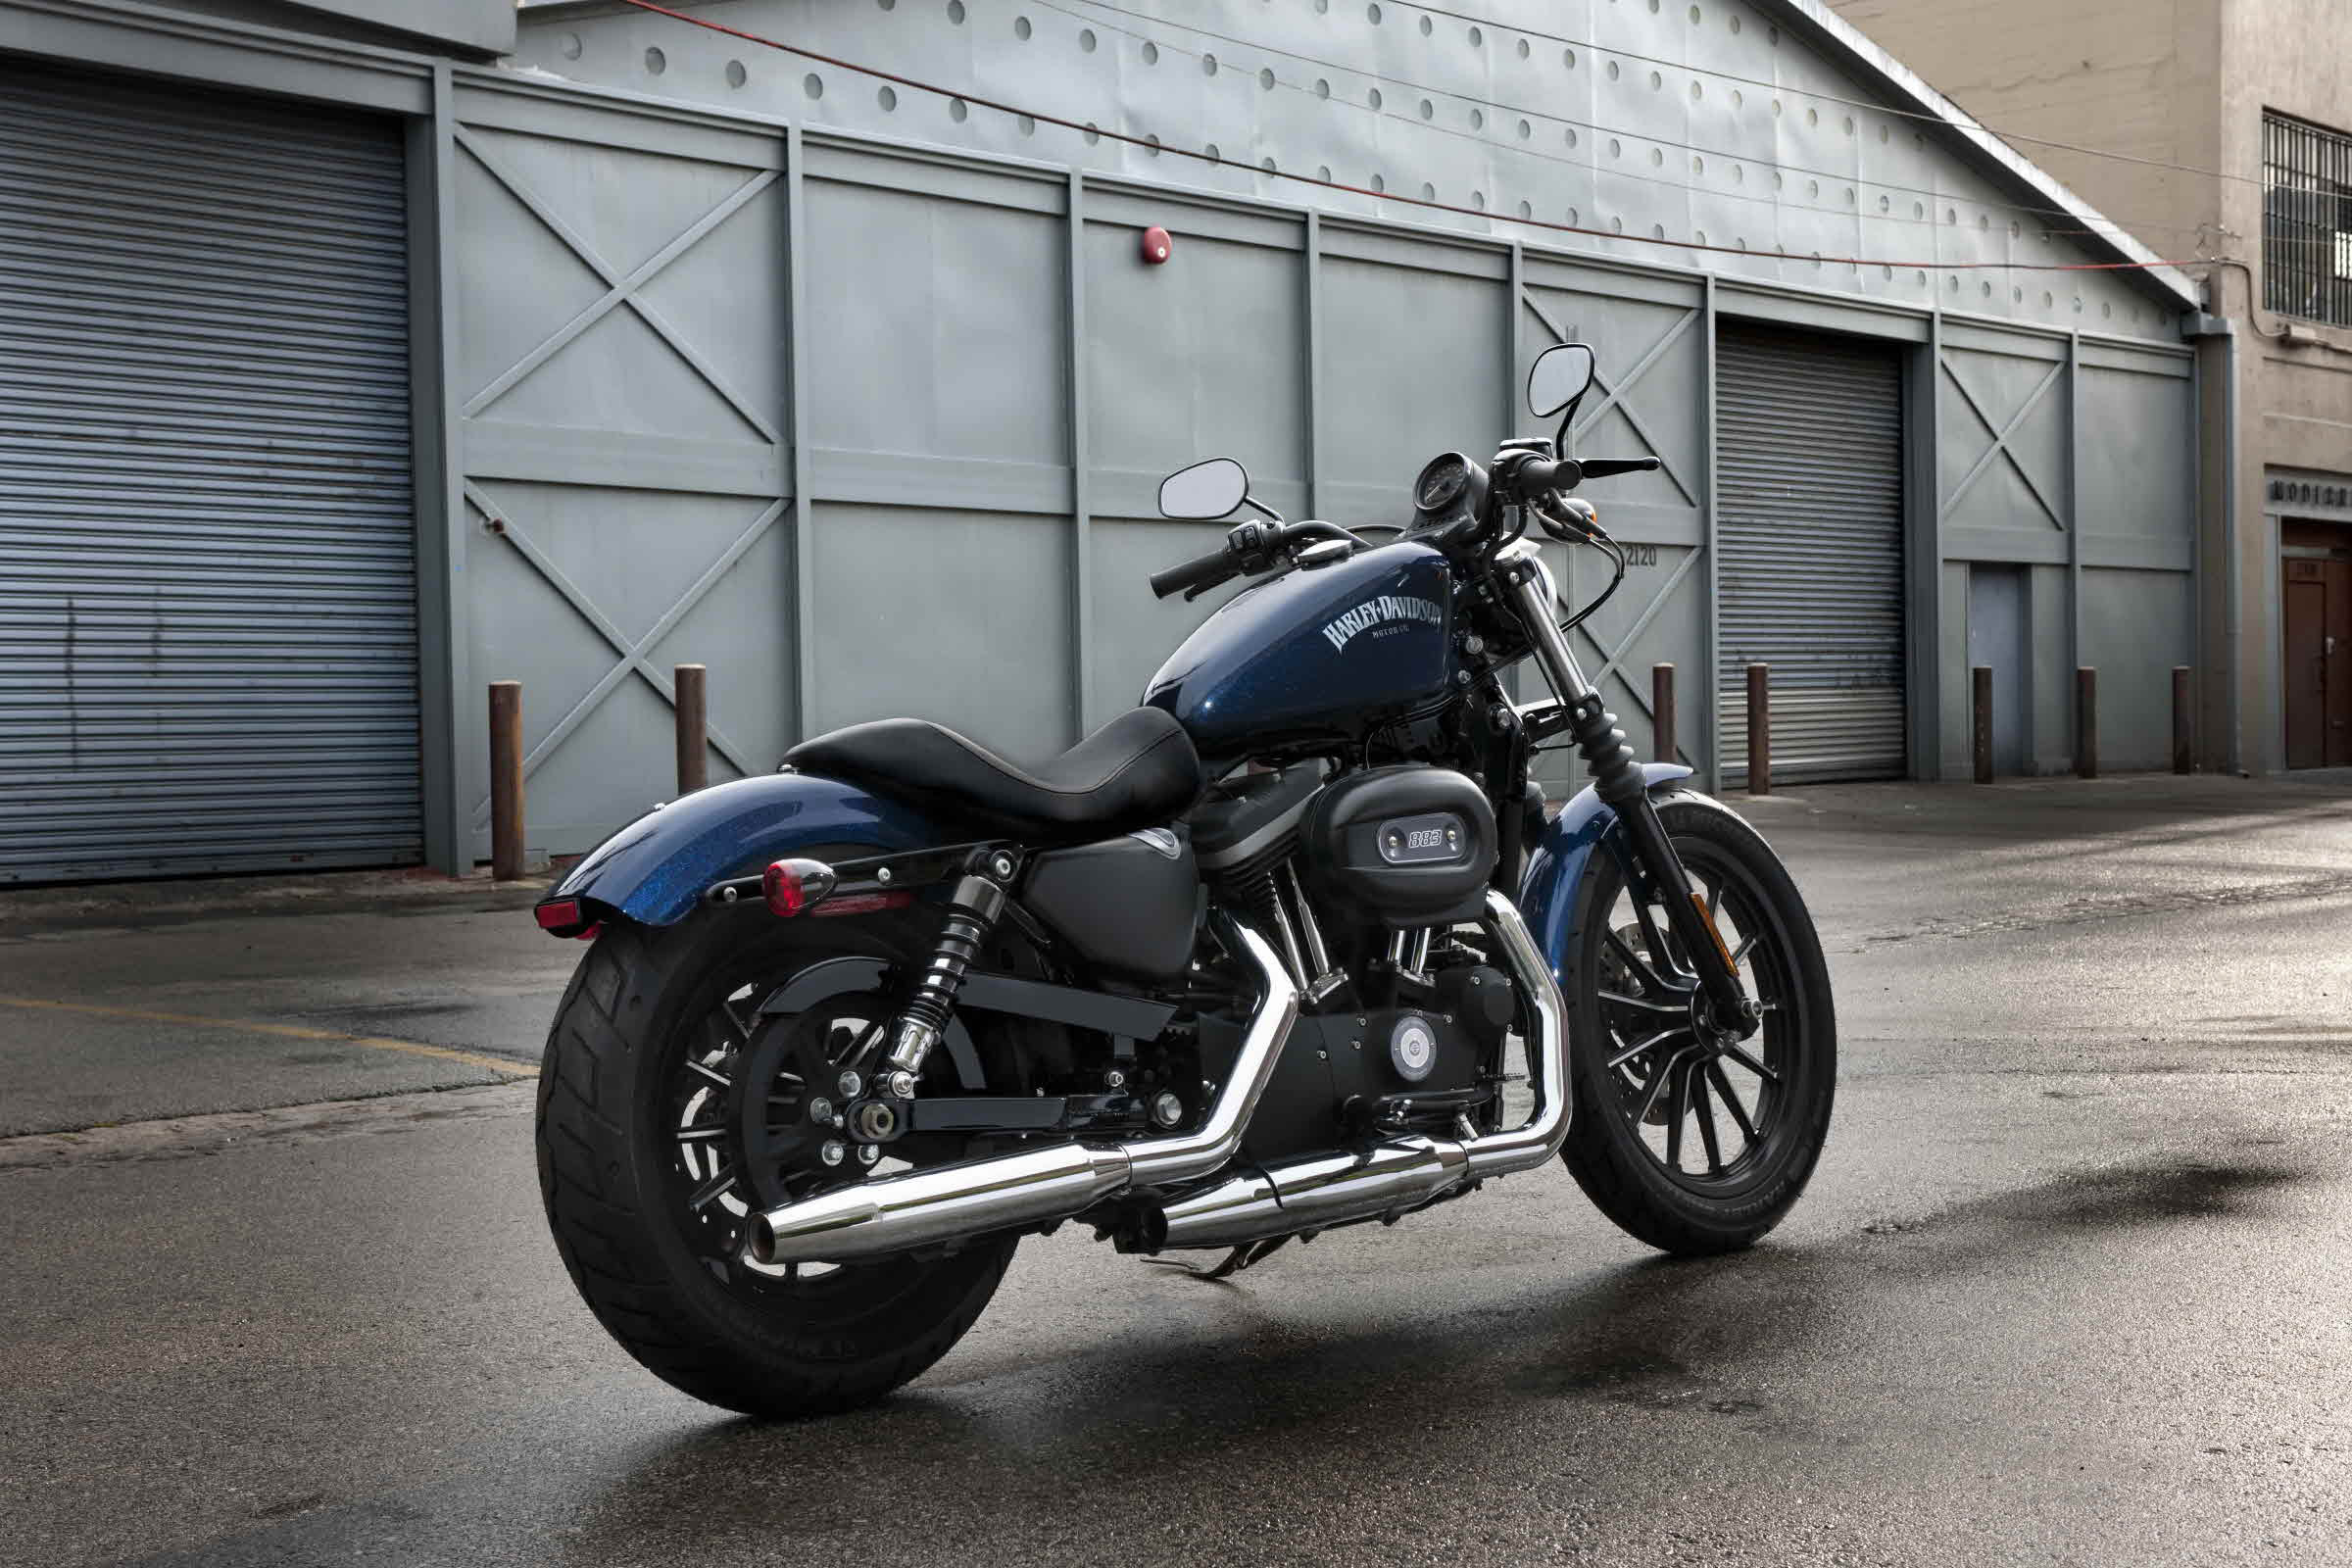 harley davidson sportster iron 883 no baffles. Black Bedroom Furniture Sets. Home Design Ideas